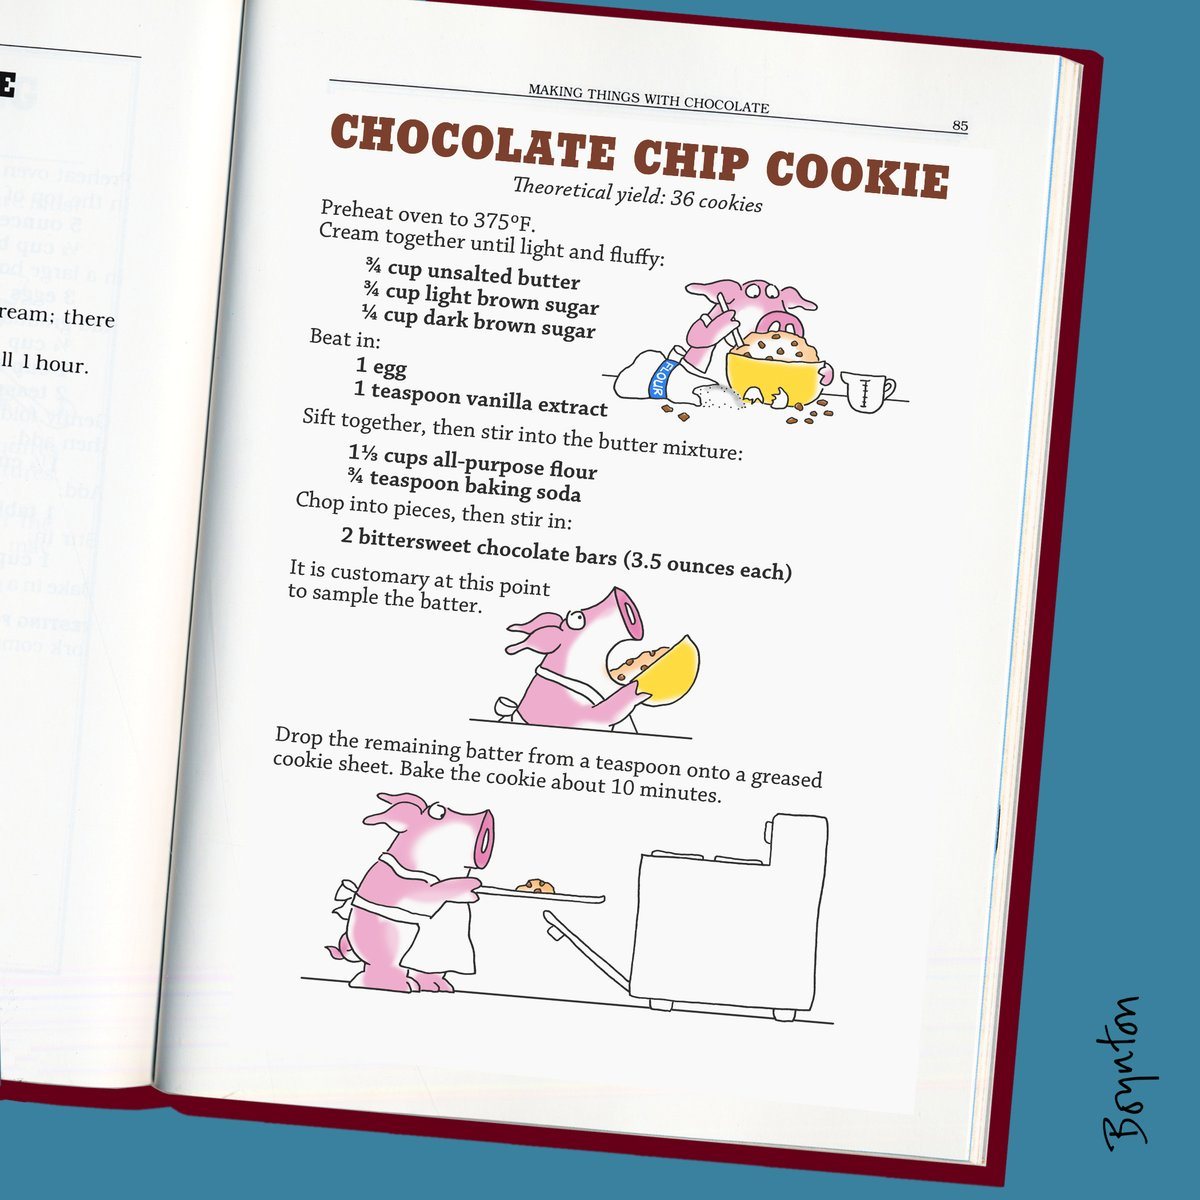 May 15 is National Chocolate Chip Day. Here's a helpful cookie recipe for you. #ChocolateChipDay